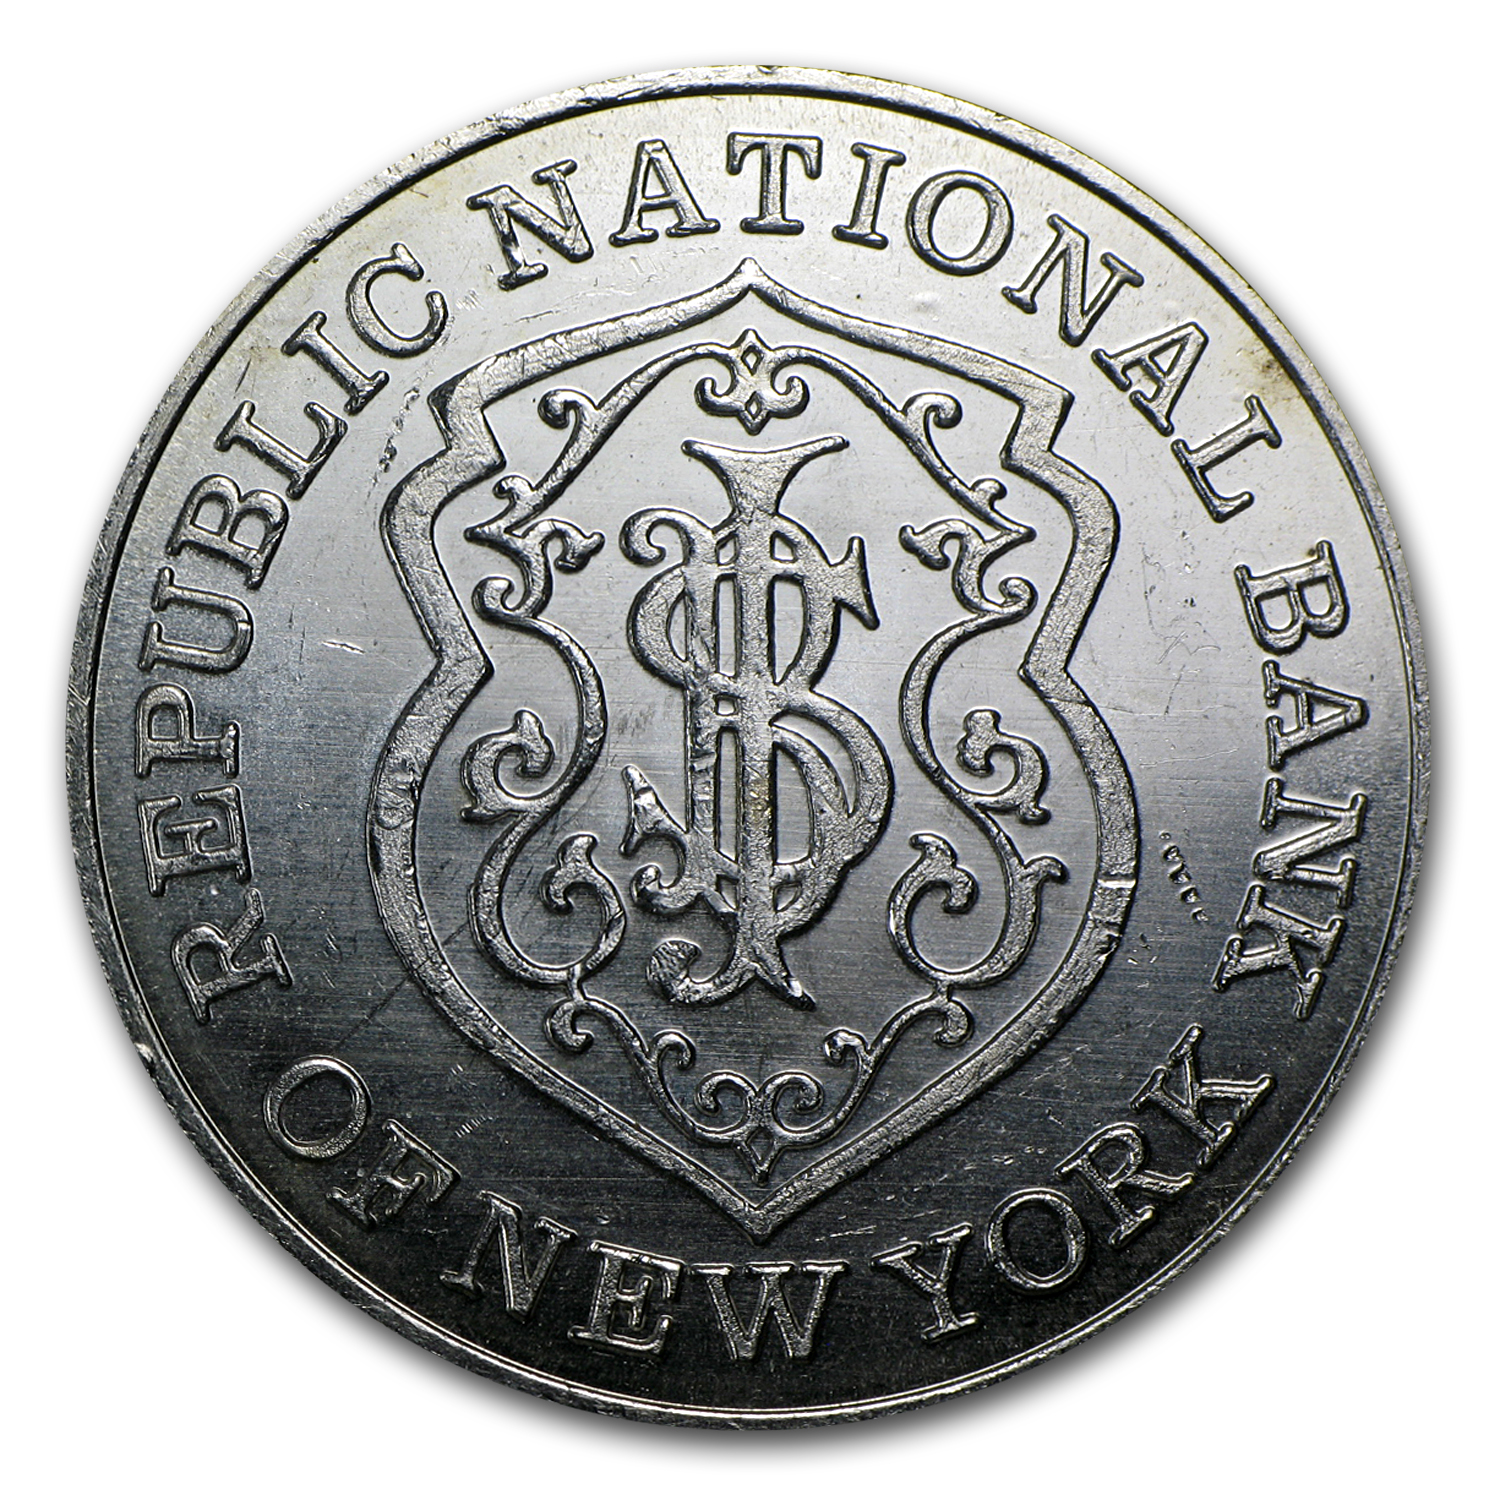 1 oz Silver Rounds - Republic National Bank of New York